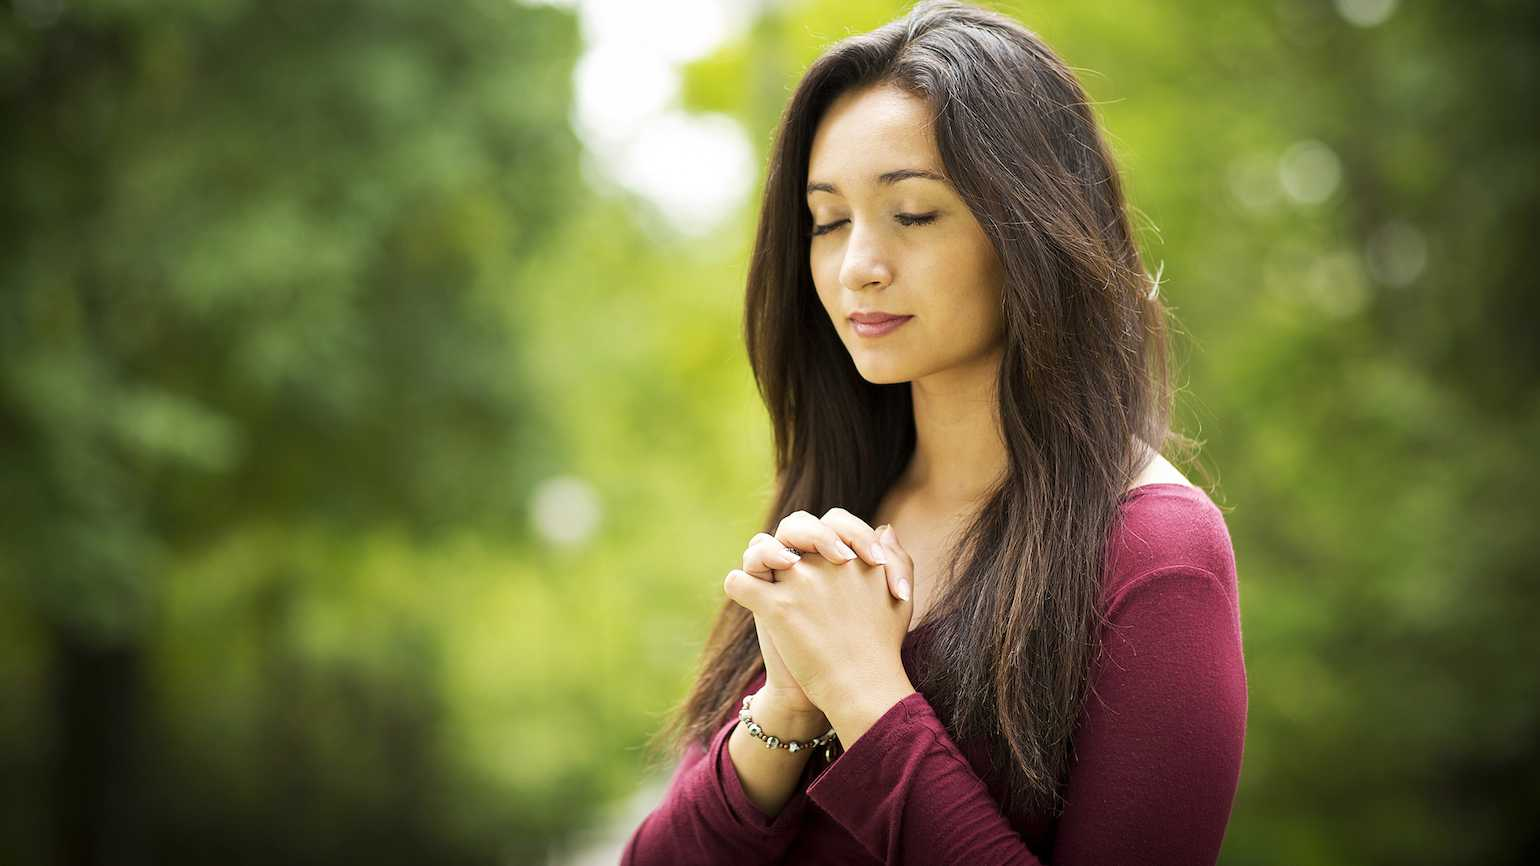 3 Misconceptions About Prayer